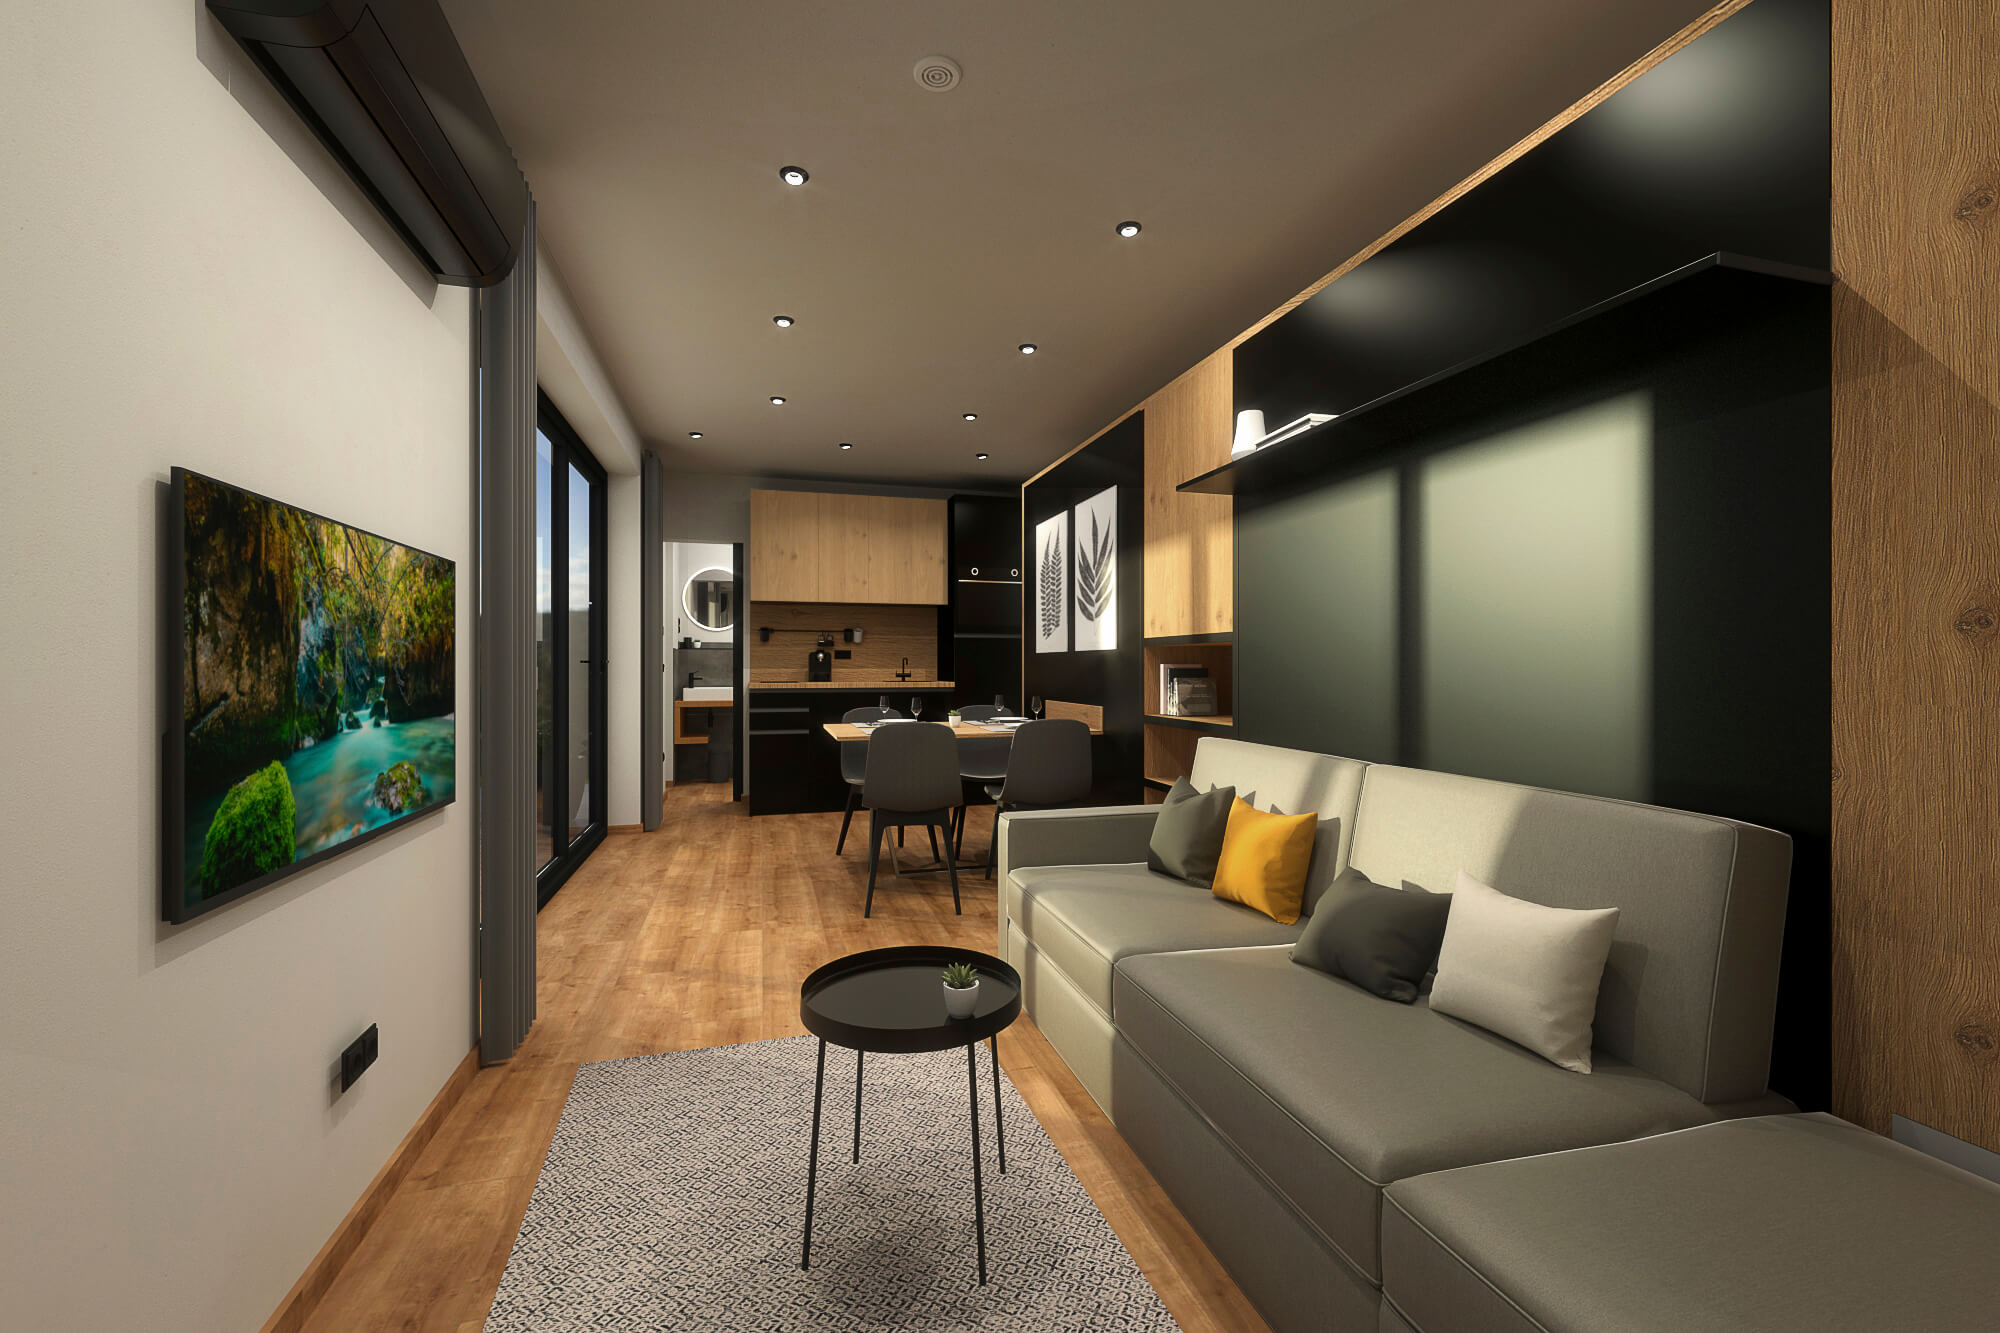 Tiny House BLOXS LIVING 30 Living room with sofa and TV